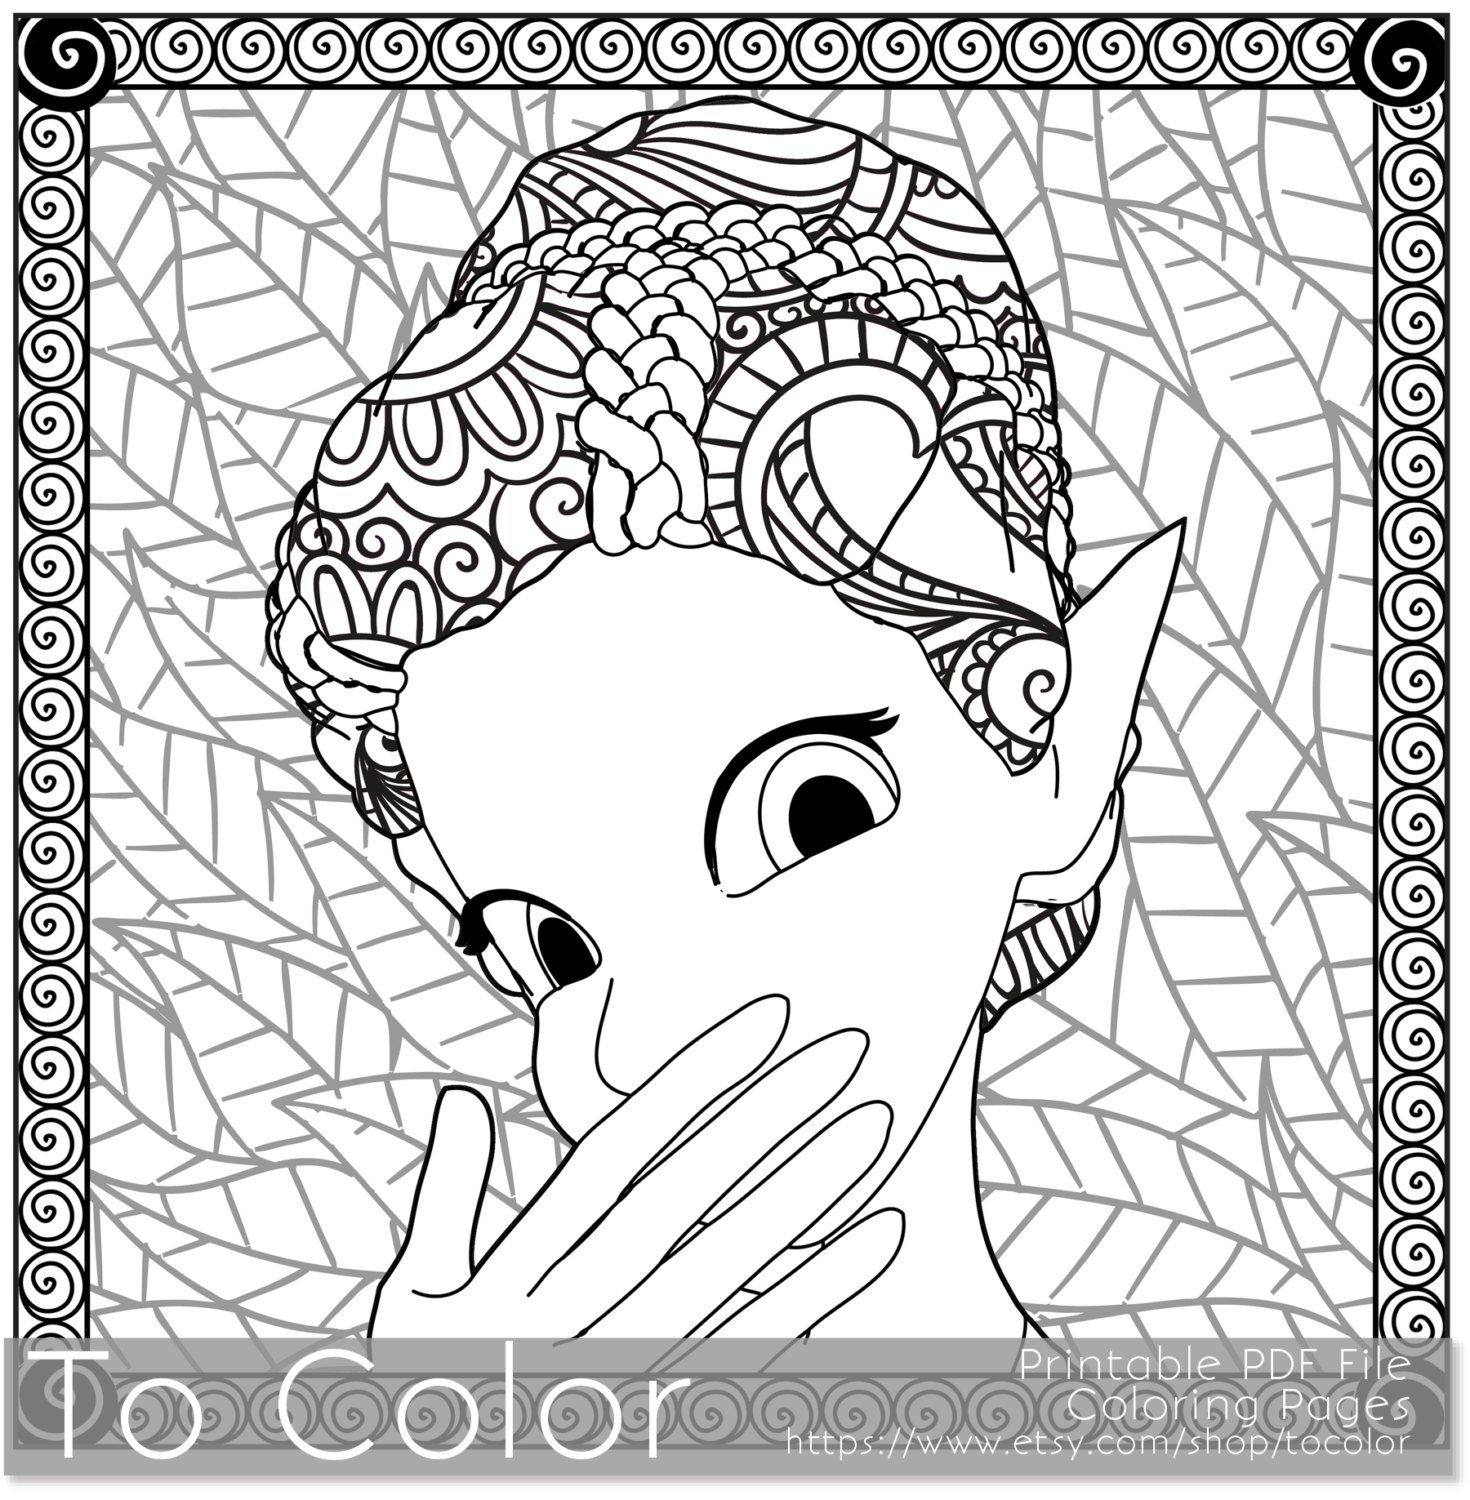 retro pixie fairy printable coloring pages for adults